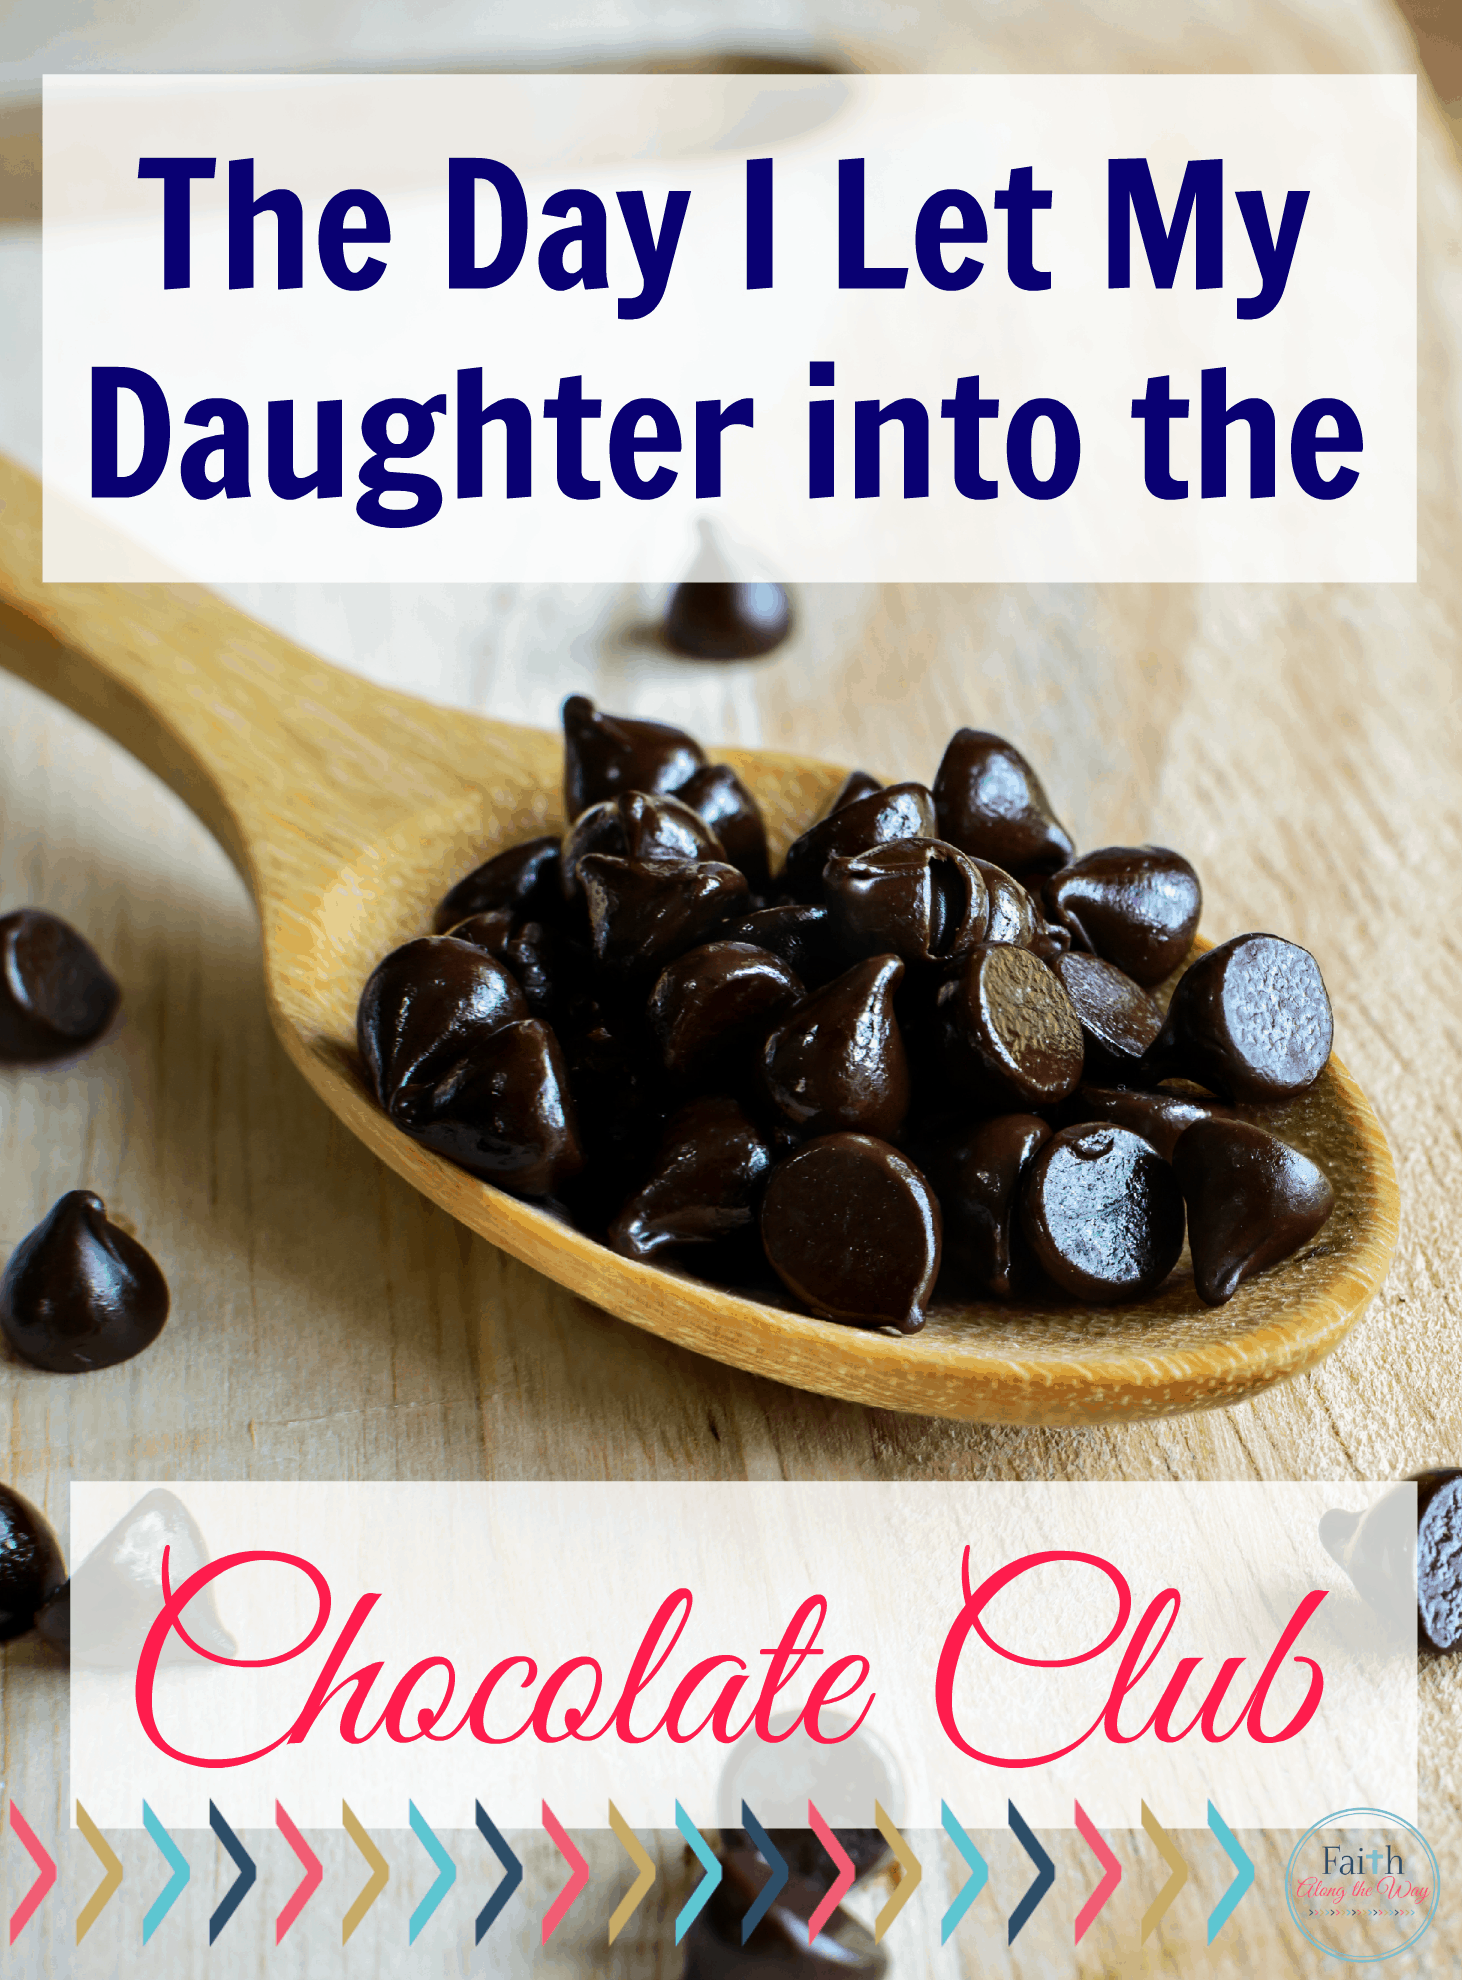 The Day I Let My Daughter into the Chocolate Club